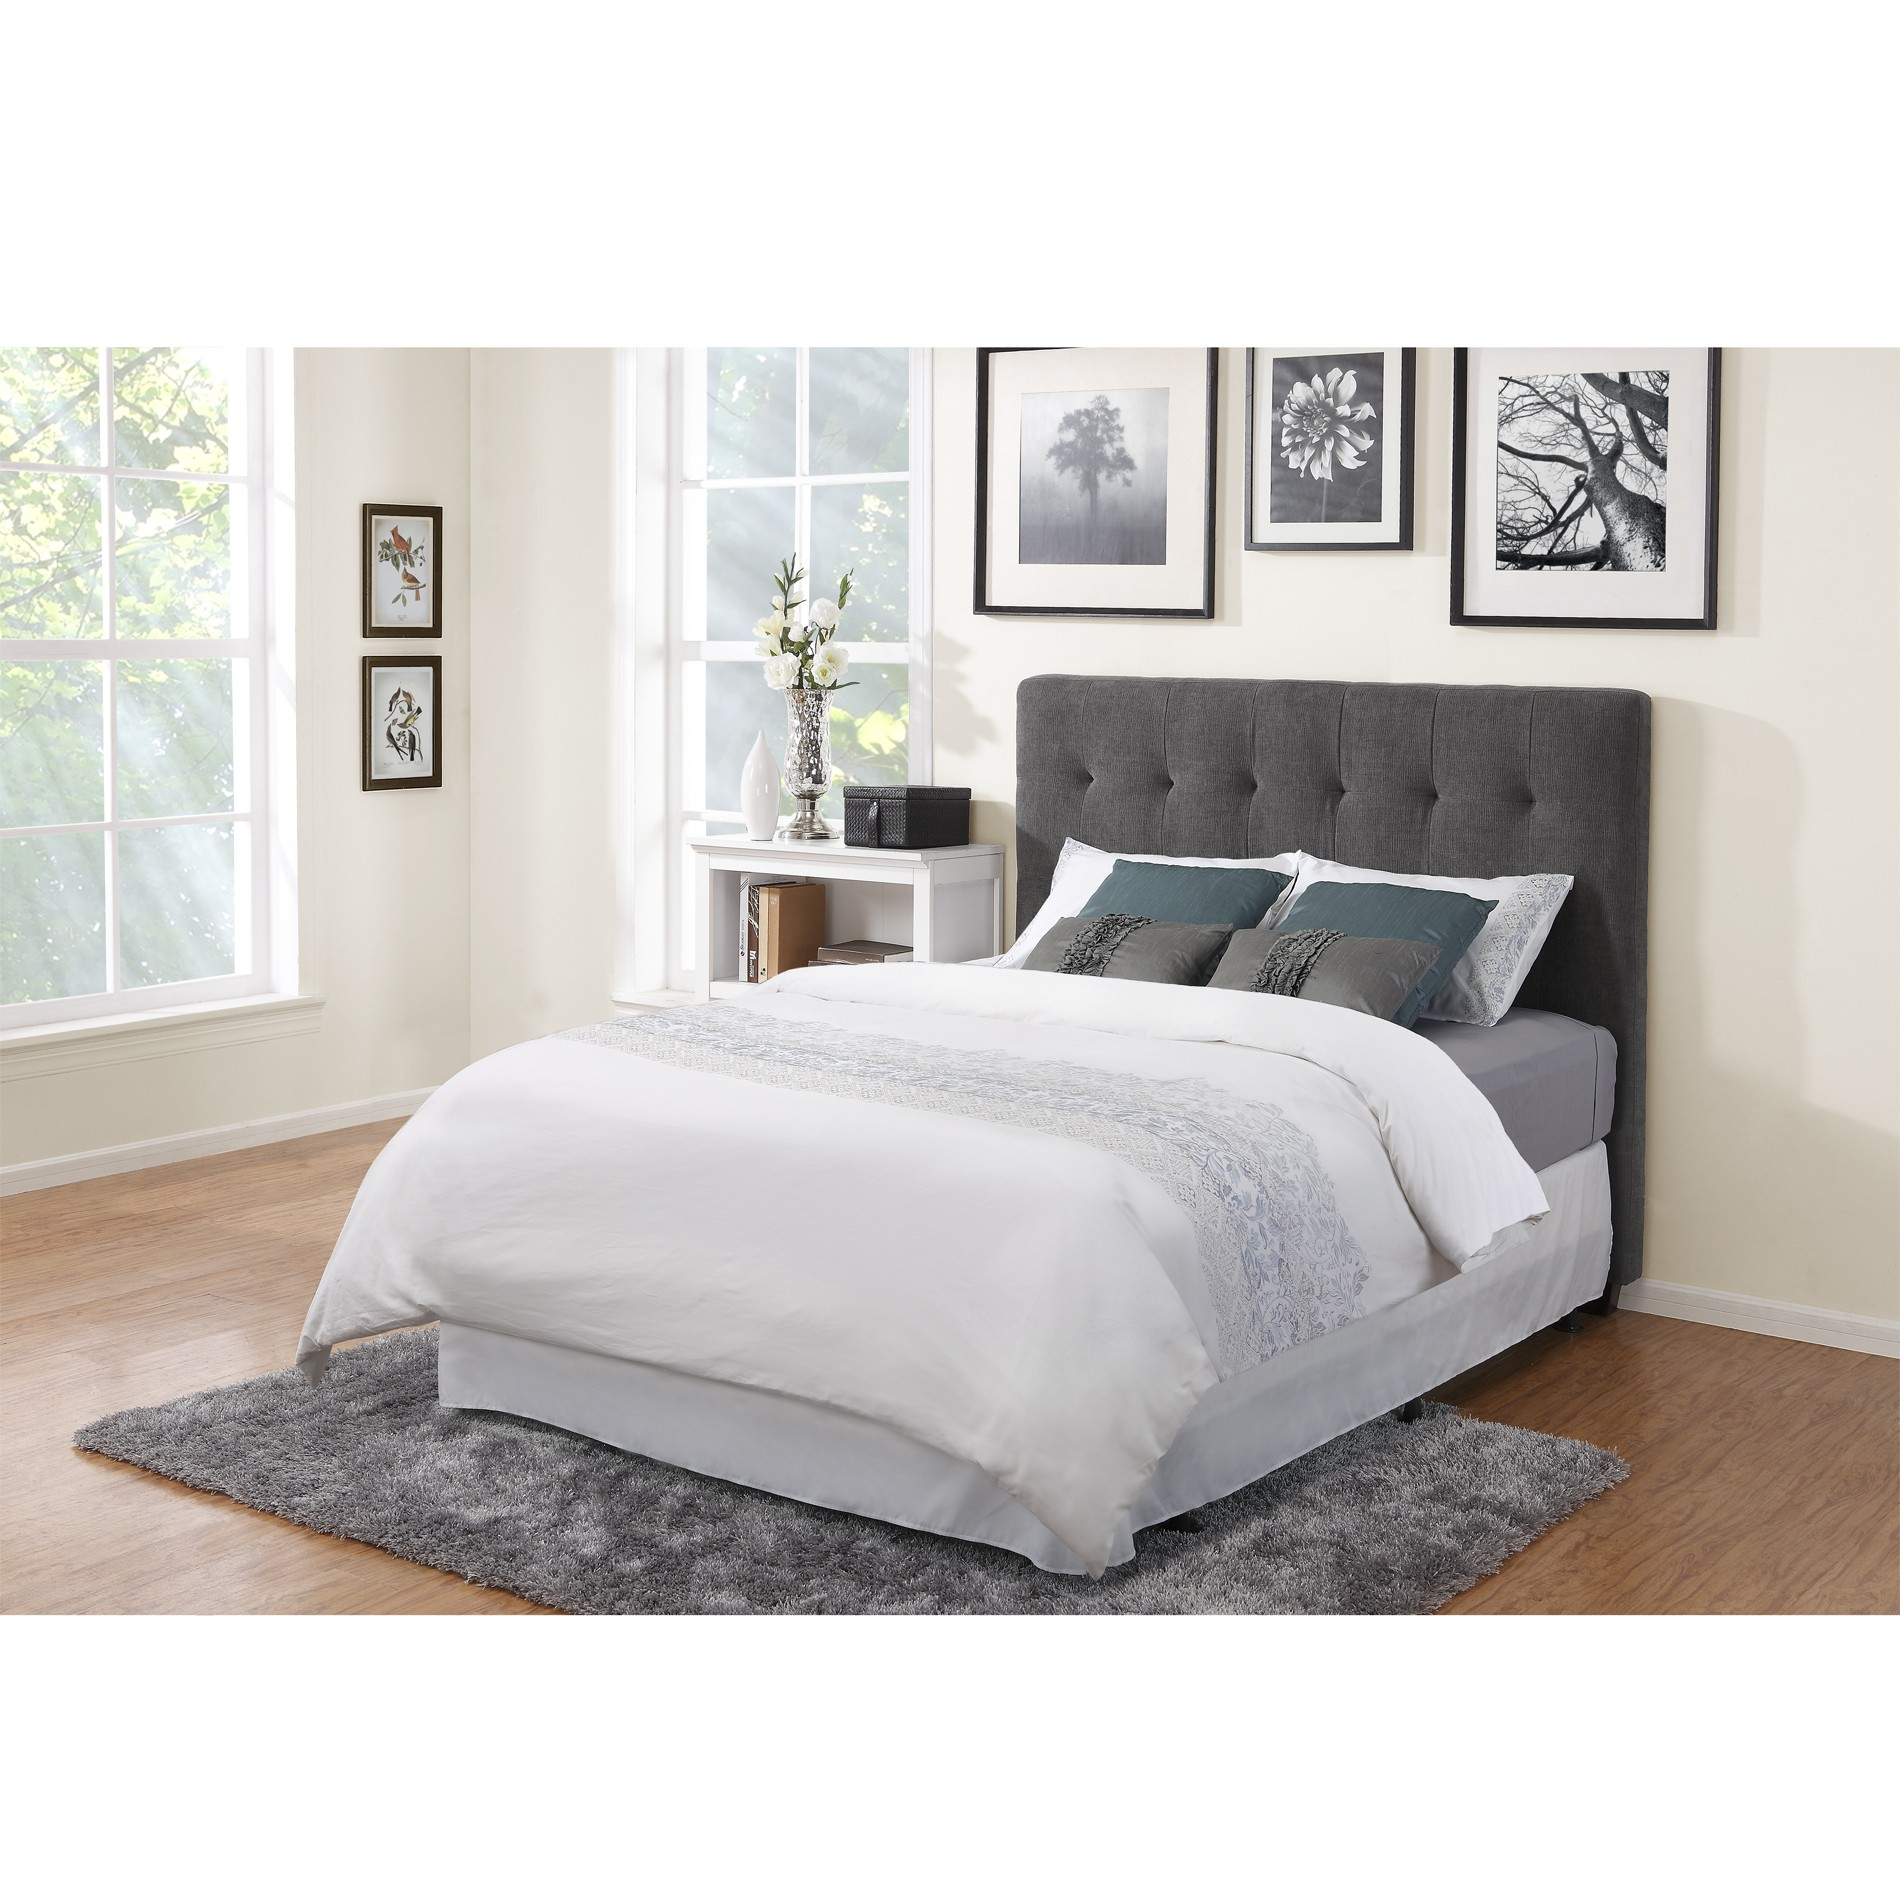 For Modern Bedroom Grey Shag Rug Wood Floor Idea White Bedside